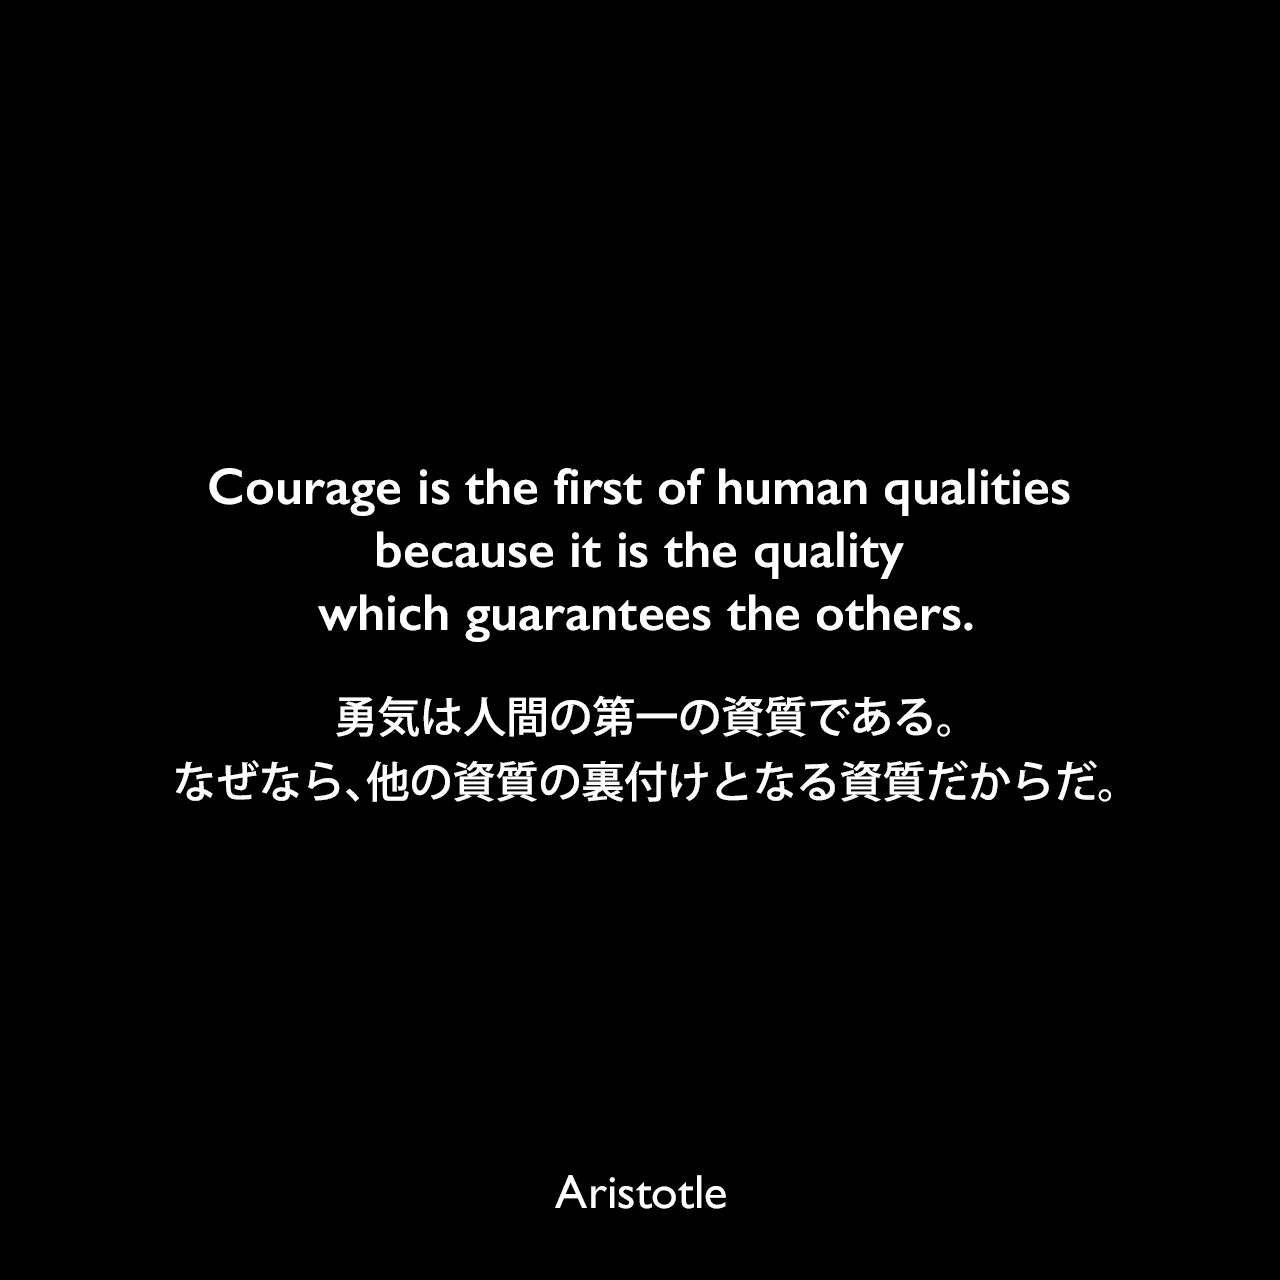 Courage is the first of human qualities because it is the quality which guarantees the others.勇気は人間の第一の資質である。なぜなら、他の資質の裏付けとなる資質だからだ。- アリストテレスの著書「ニコマコス倫理学」よりAristotle